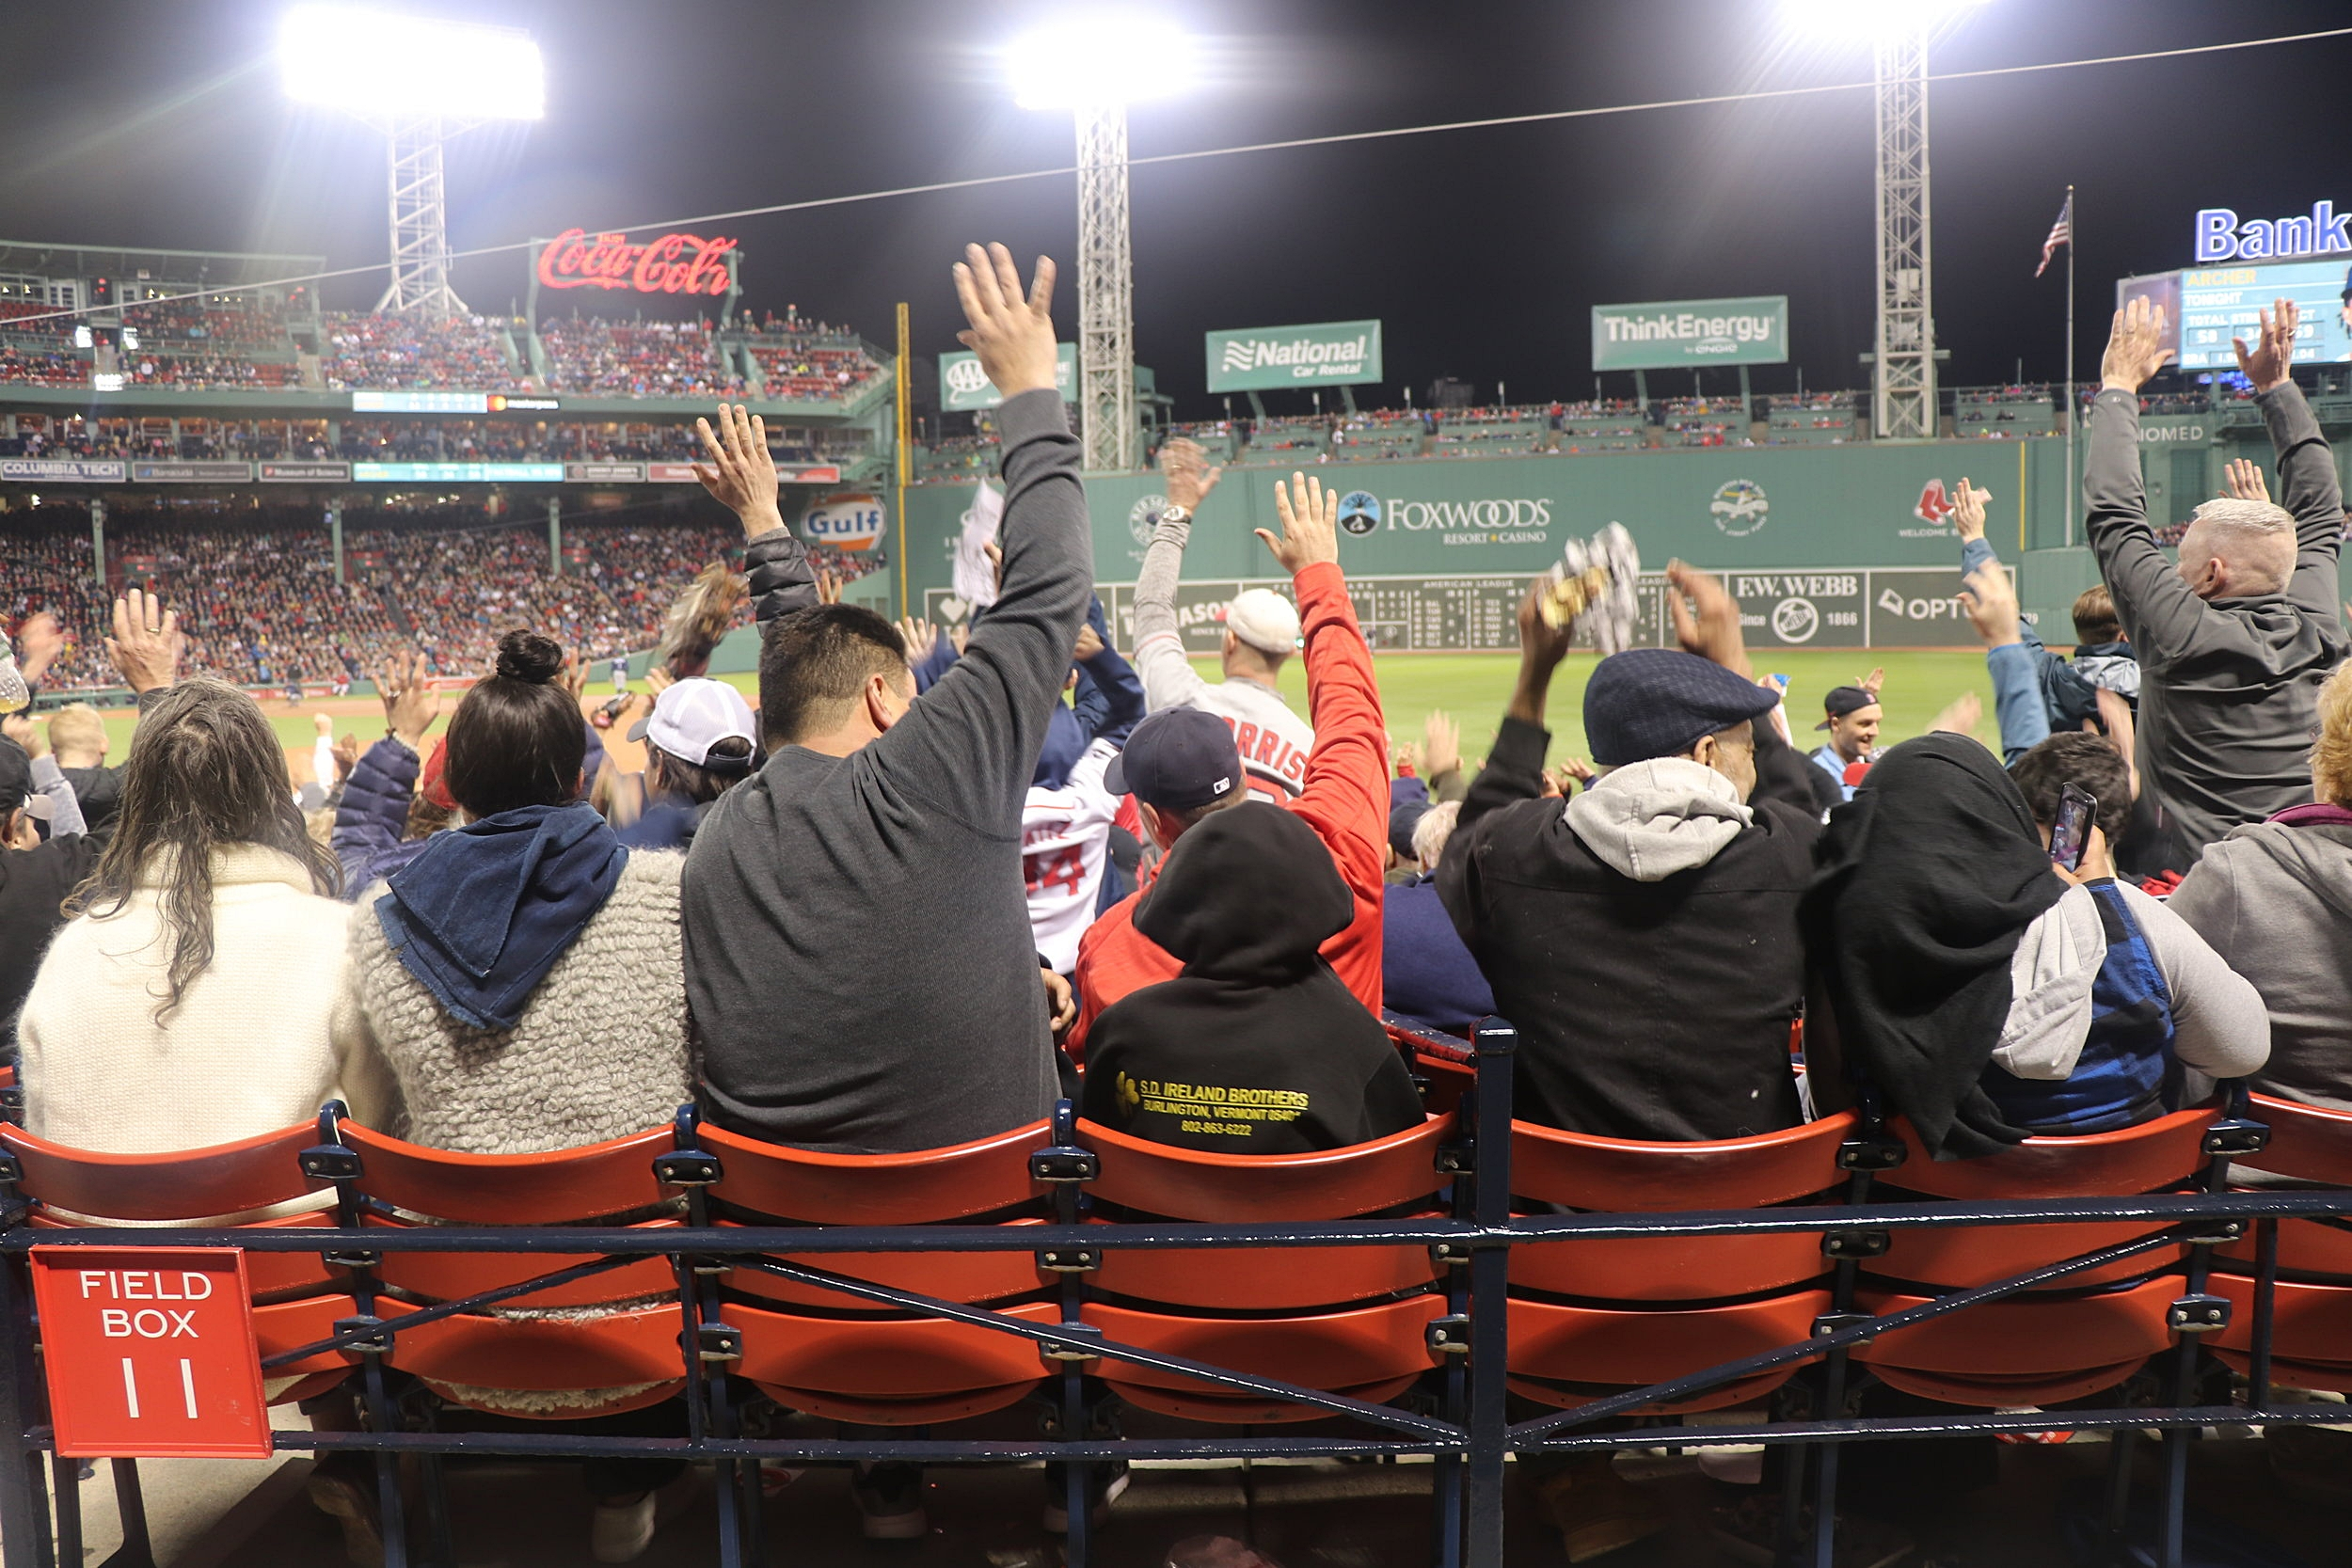 Fans doing the wave - happens throughout the whole game